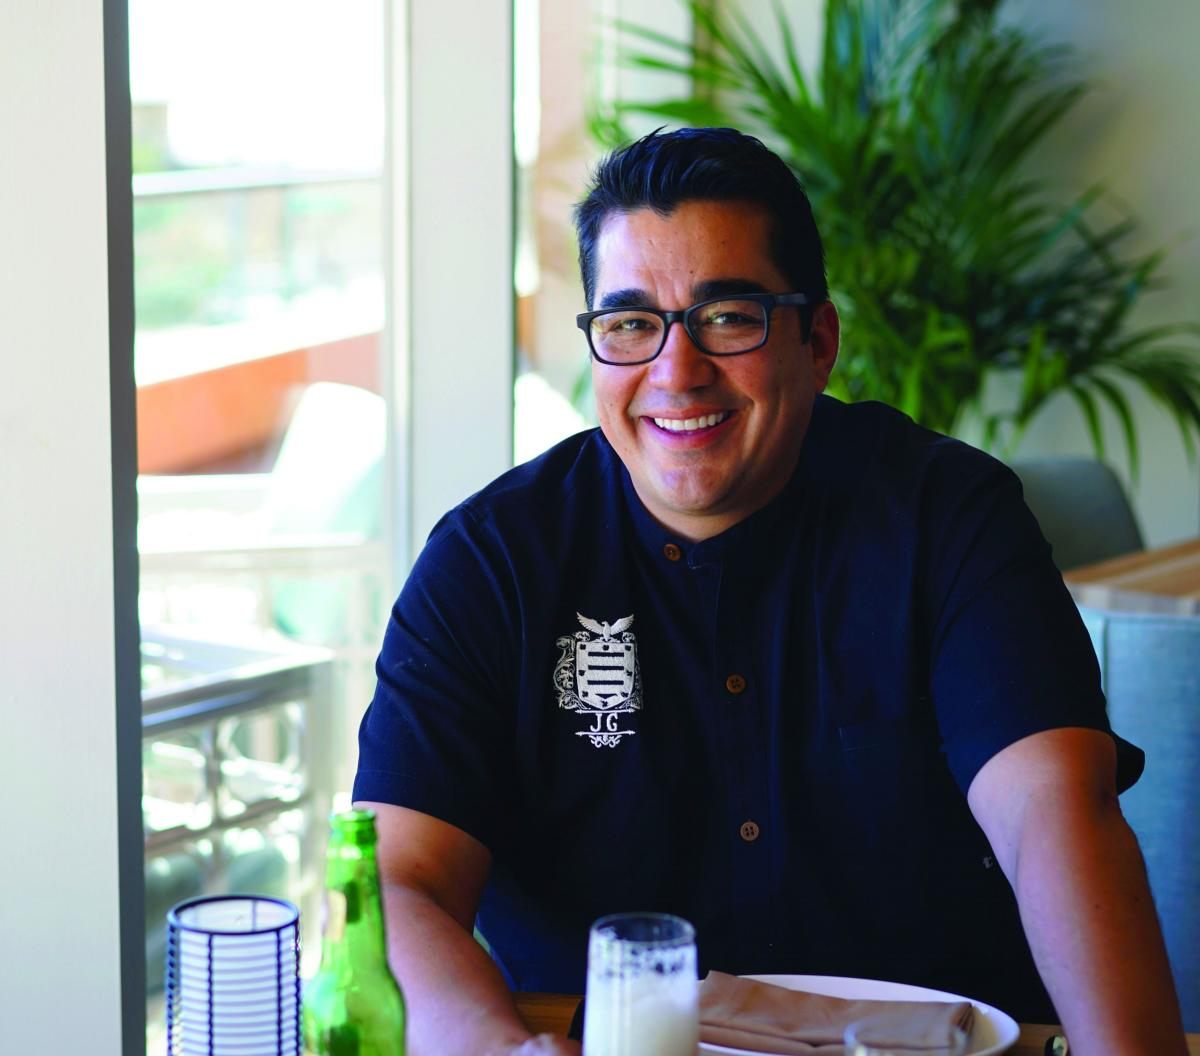 Get To Know: Iron Chef Jose Garces